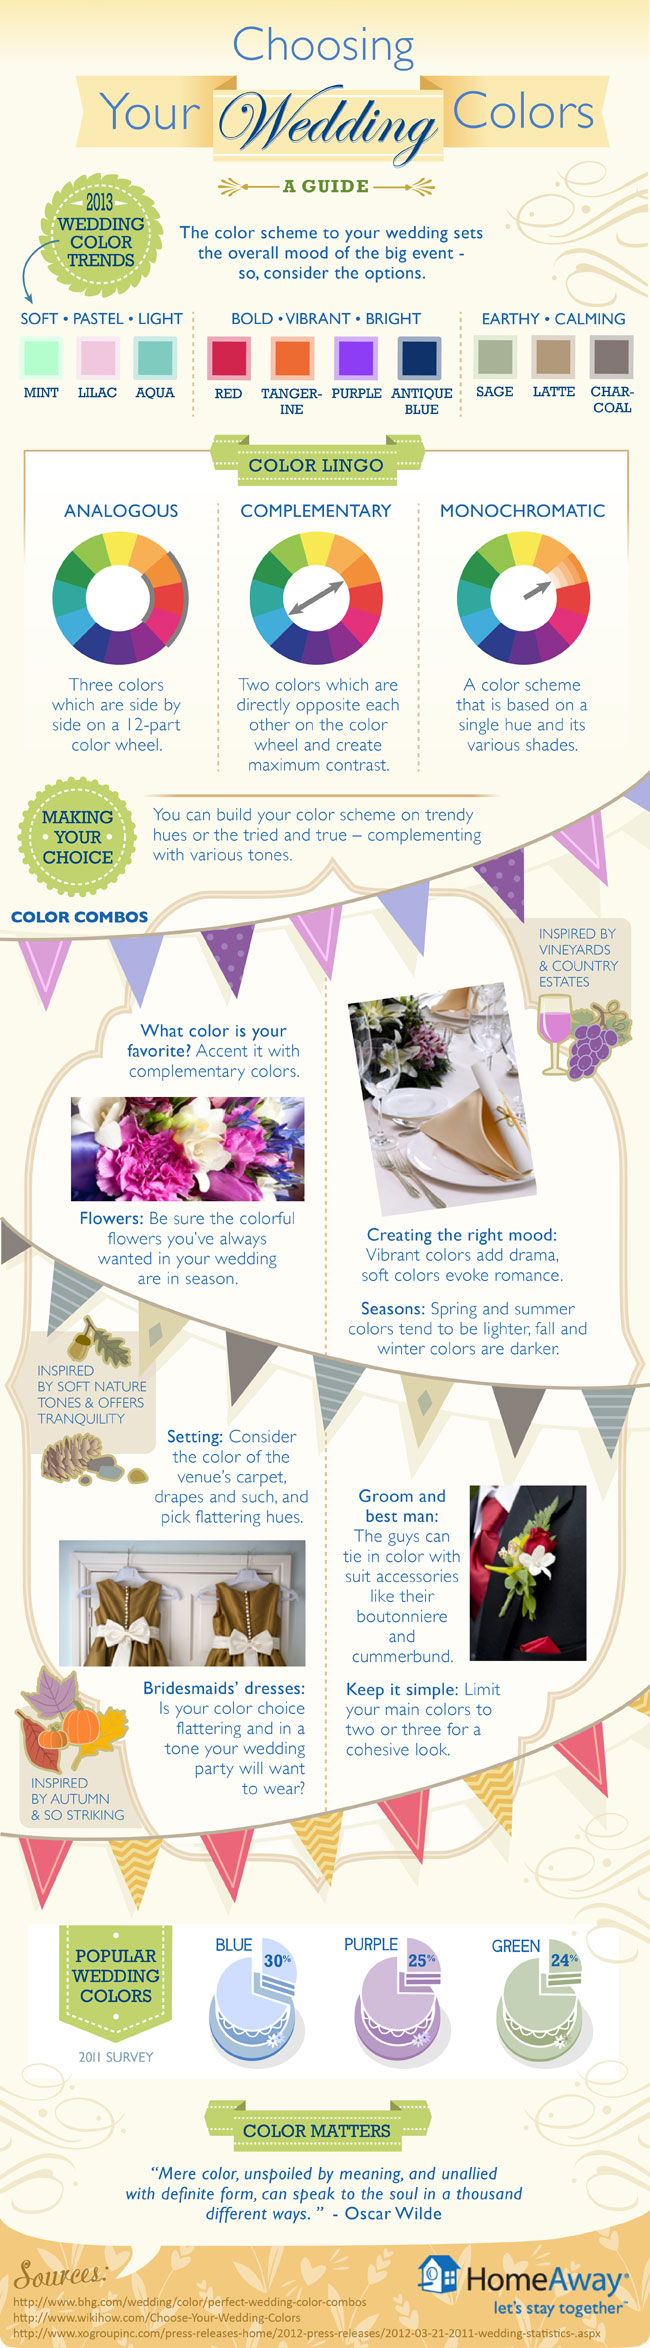 an infographic guide to color trends and how to choose a color scheme for your wedding